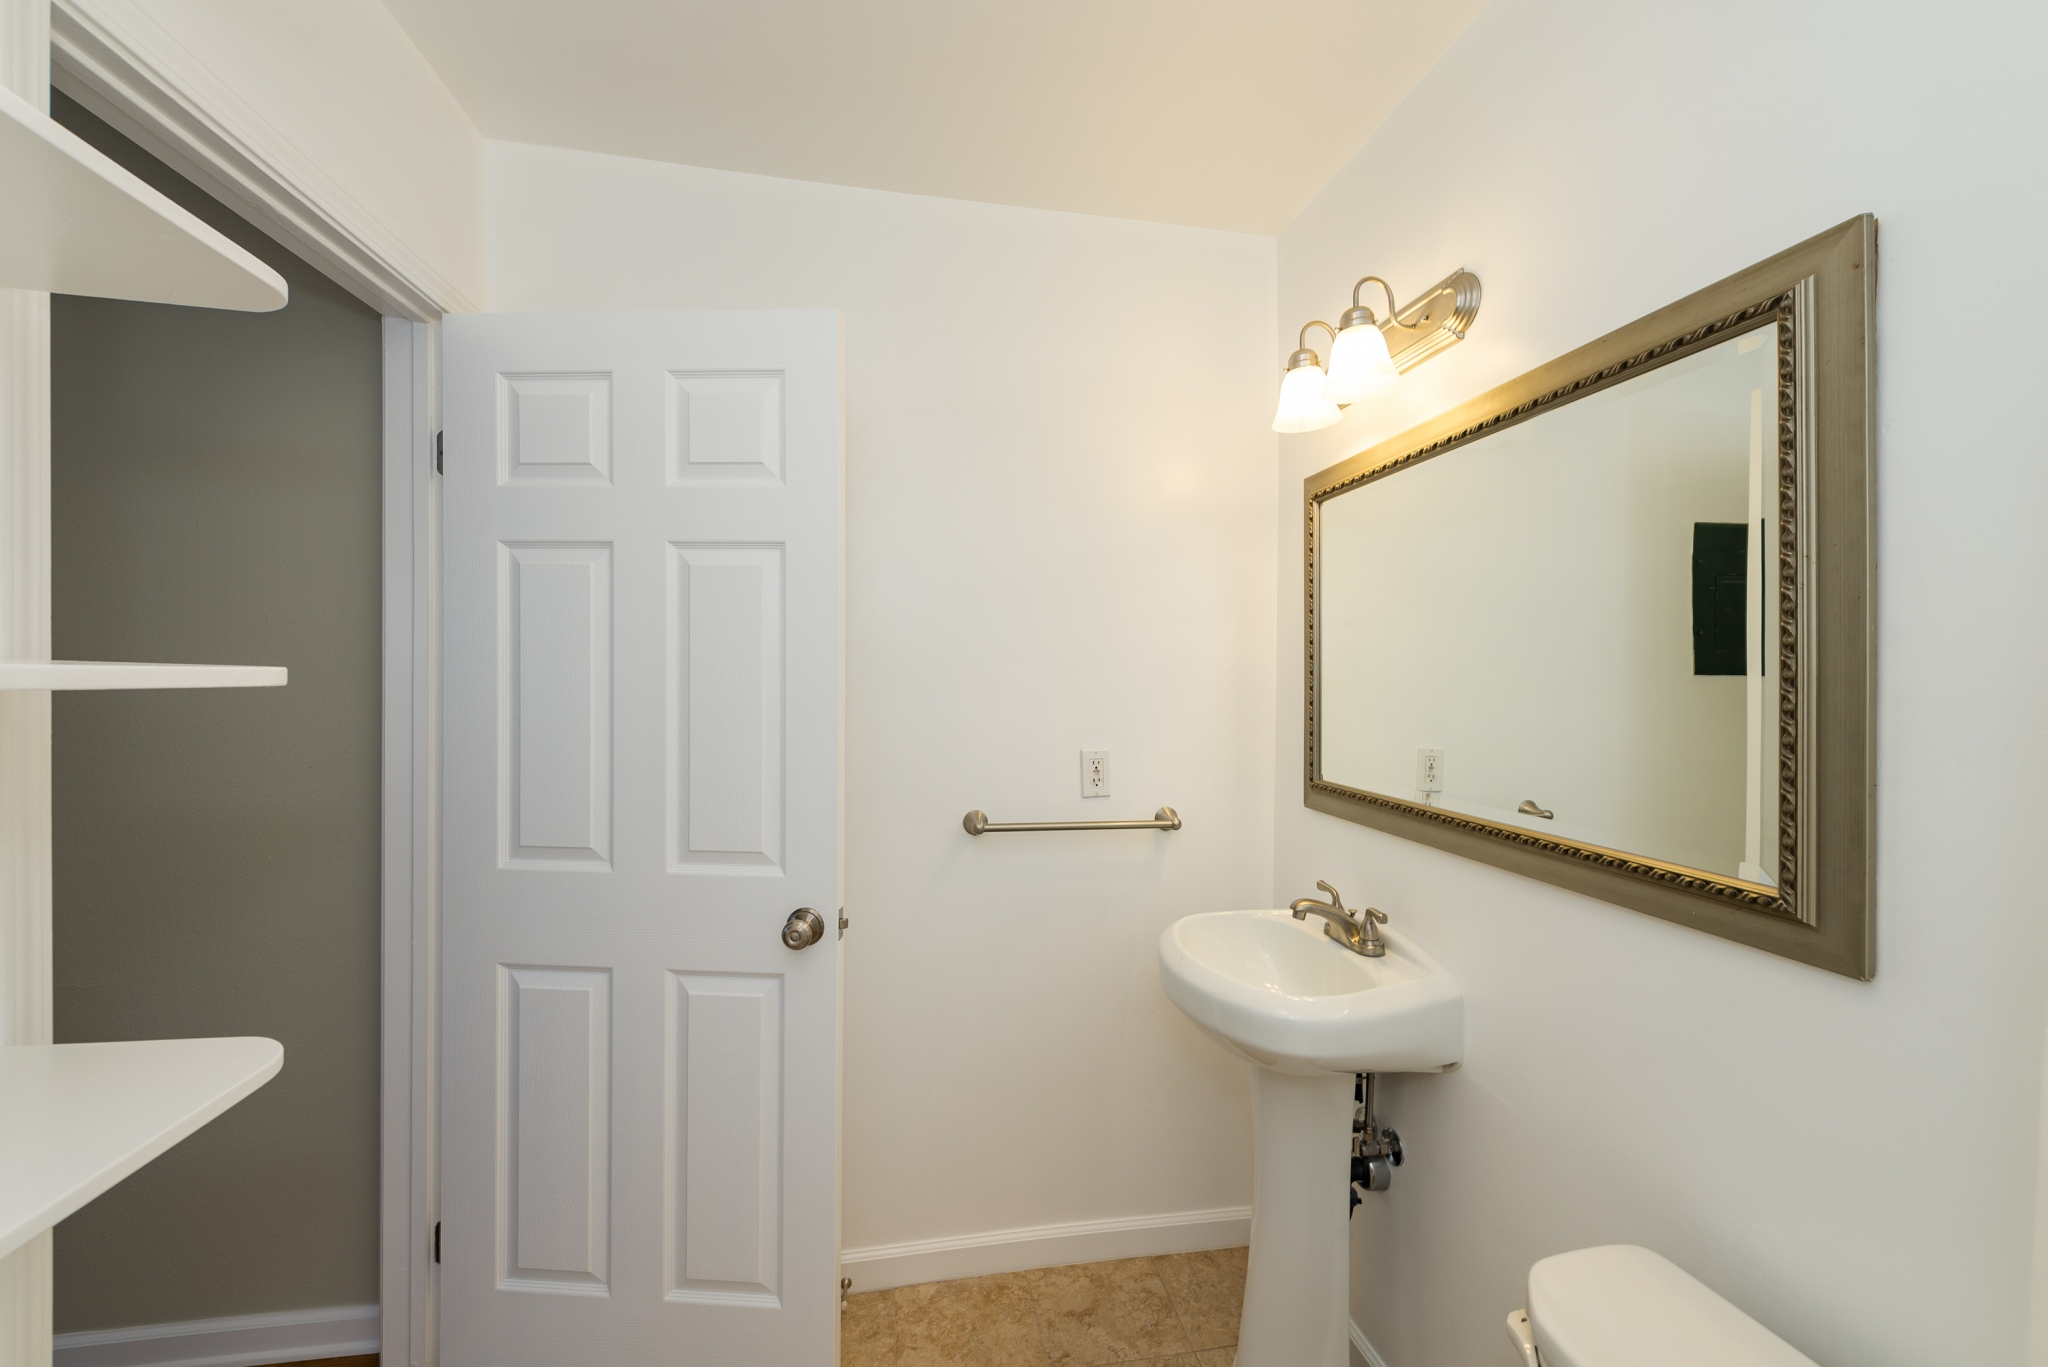 Image of Ceramic tile floors & upgraded fixtures in bathrooms for The Sterling